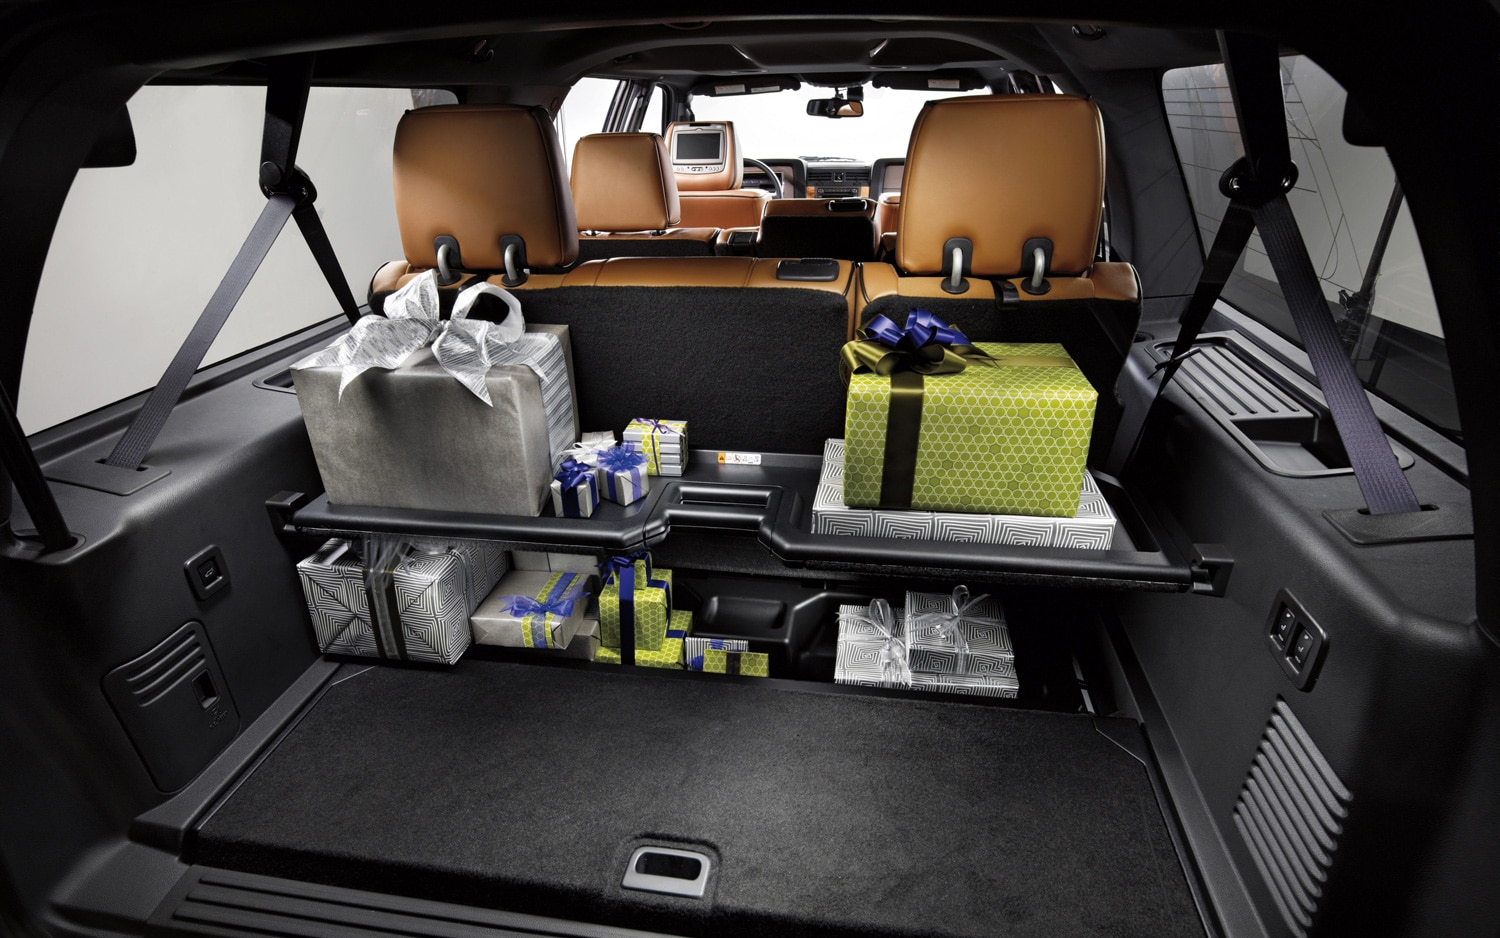 2012 Lincoln Navigator Rear Interior Cargo